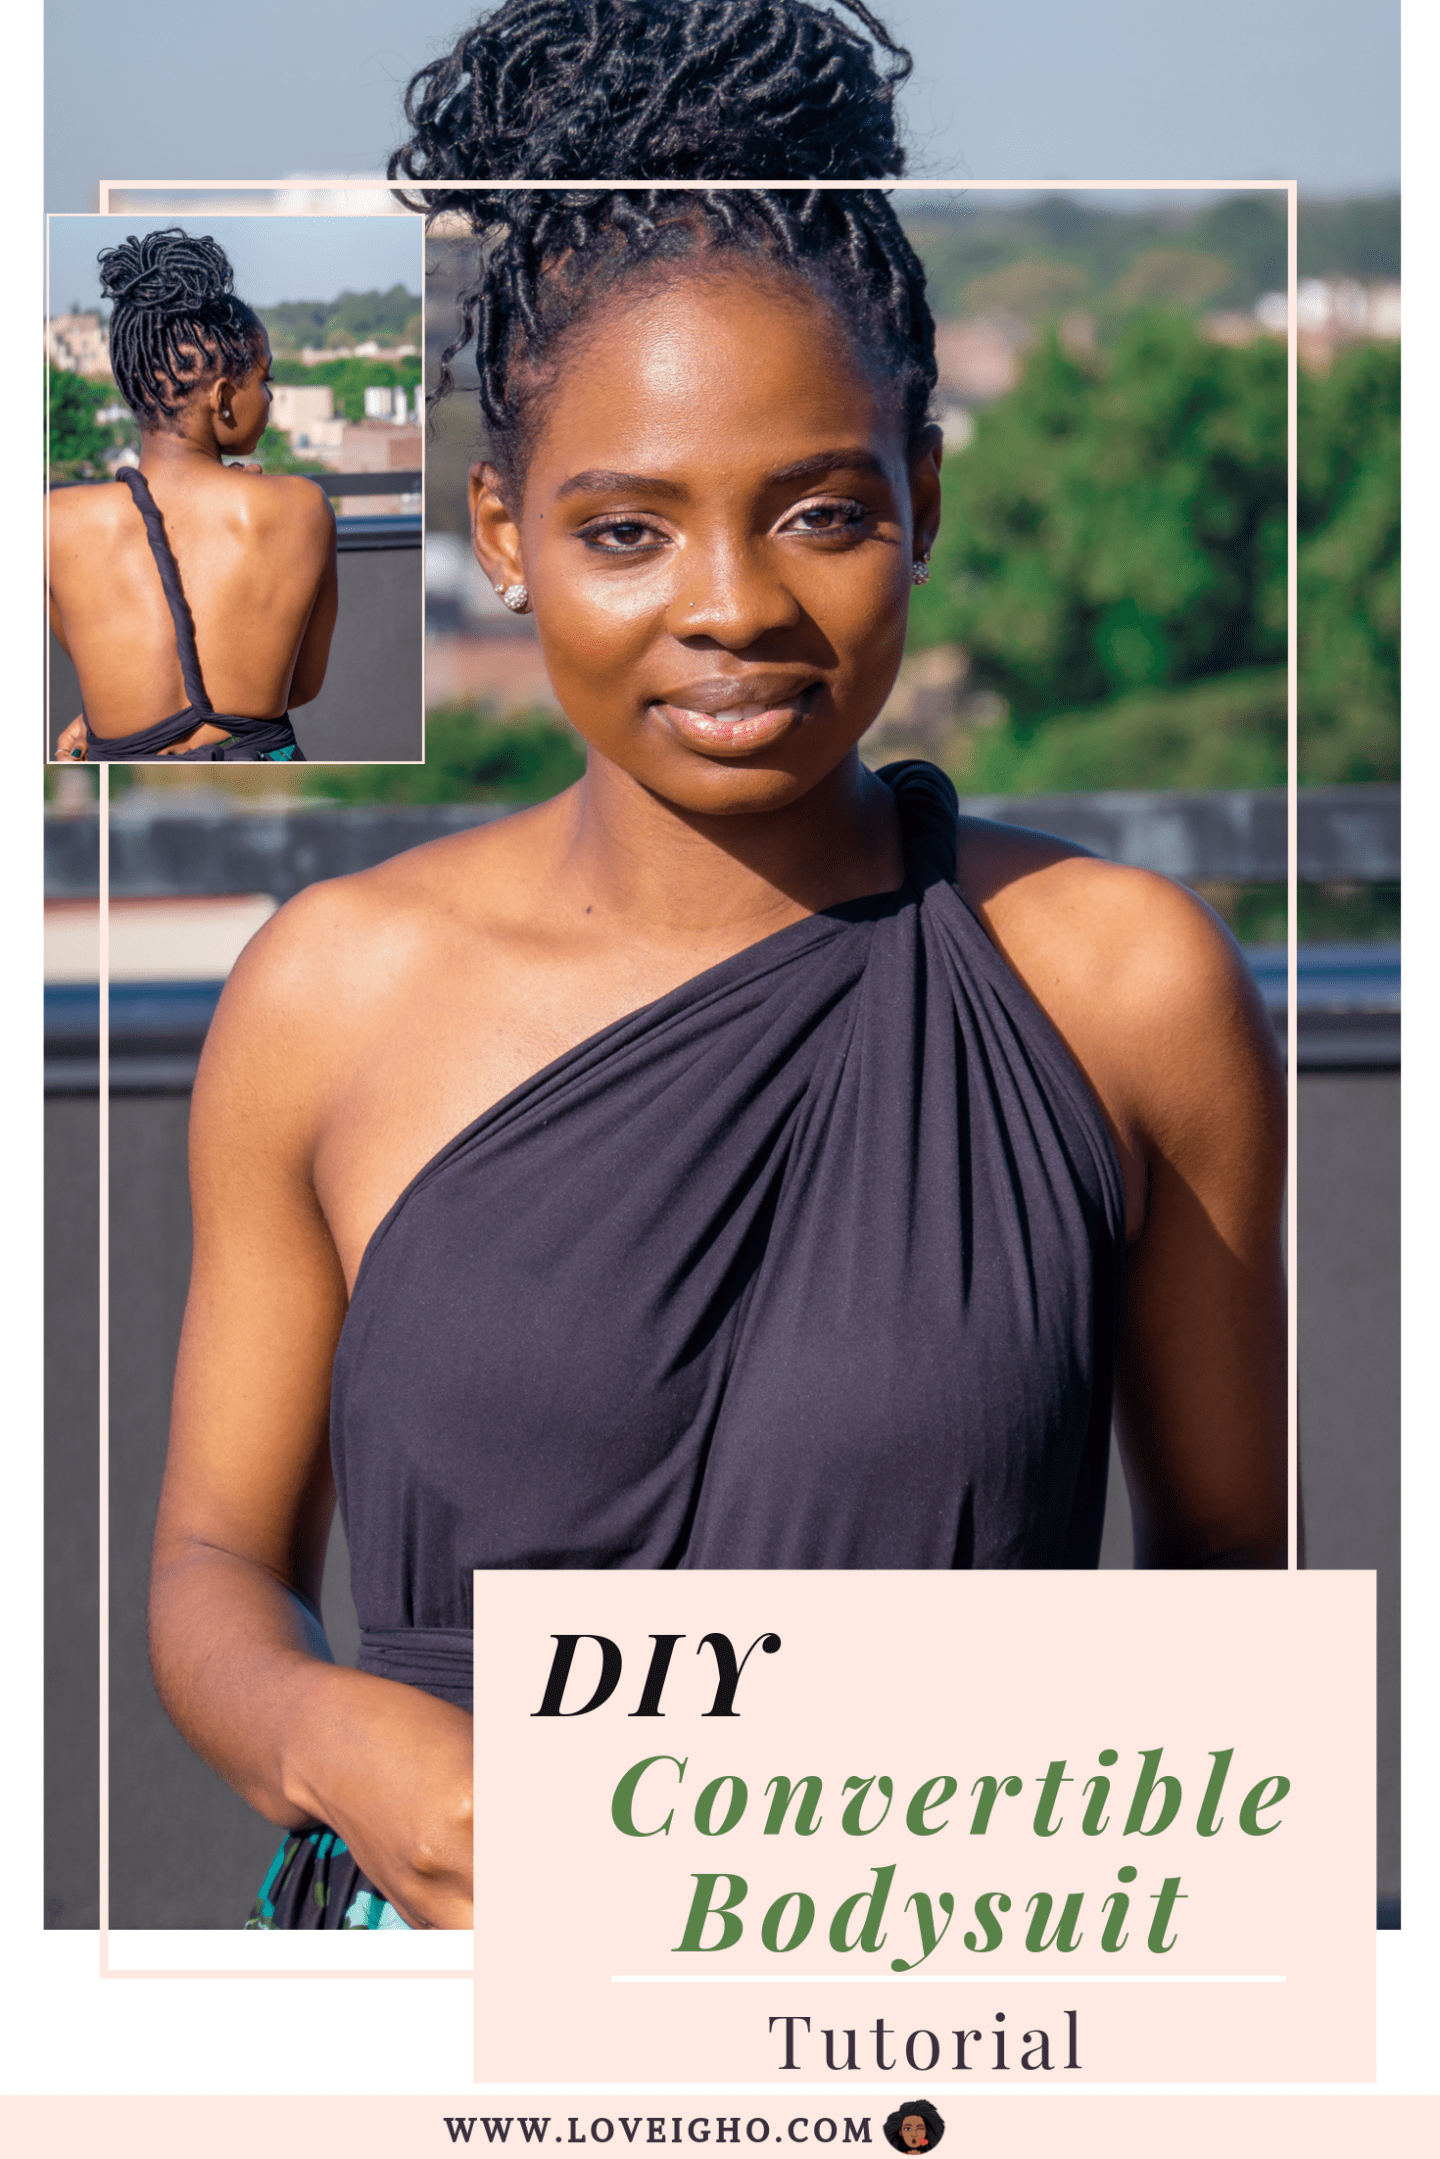 DIY Convertible Bodysuit | Love Igho